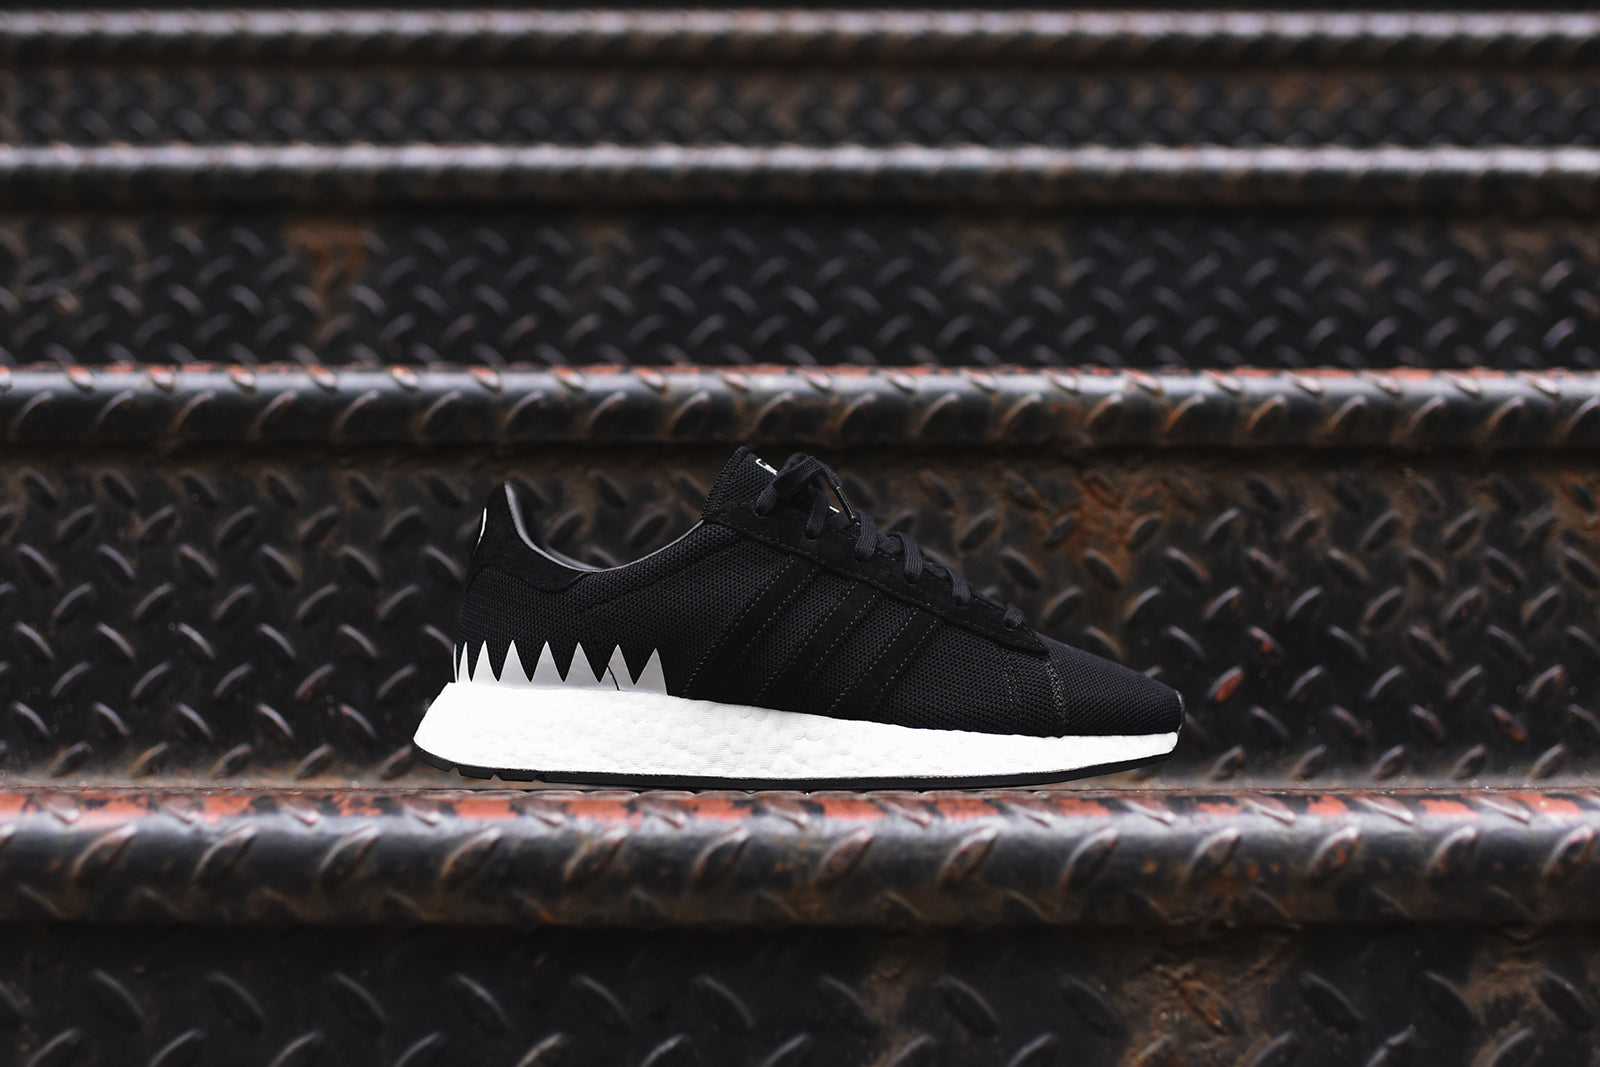 competitive price b8a52 16642 adidas Consortium x Neighborhood Chop Shop. Black  White